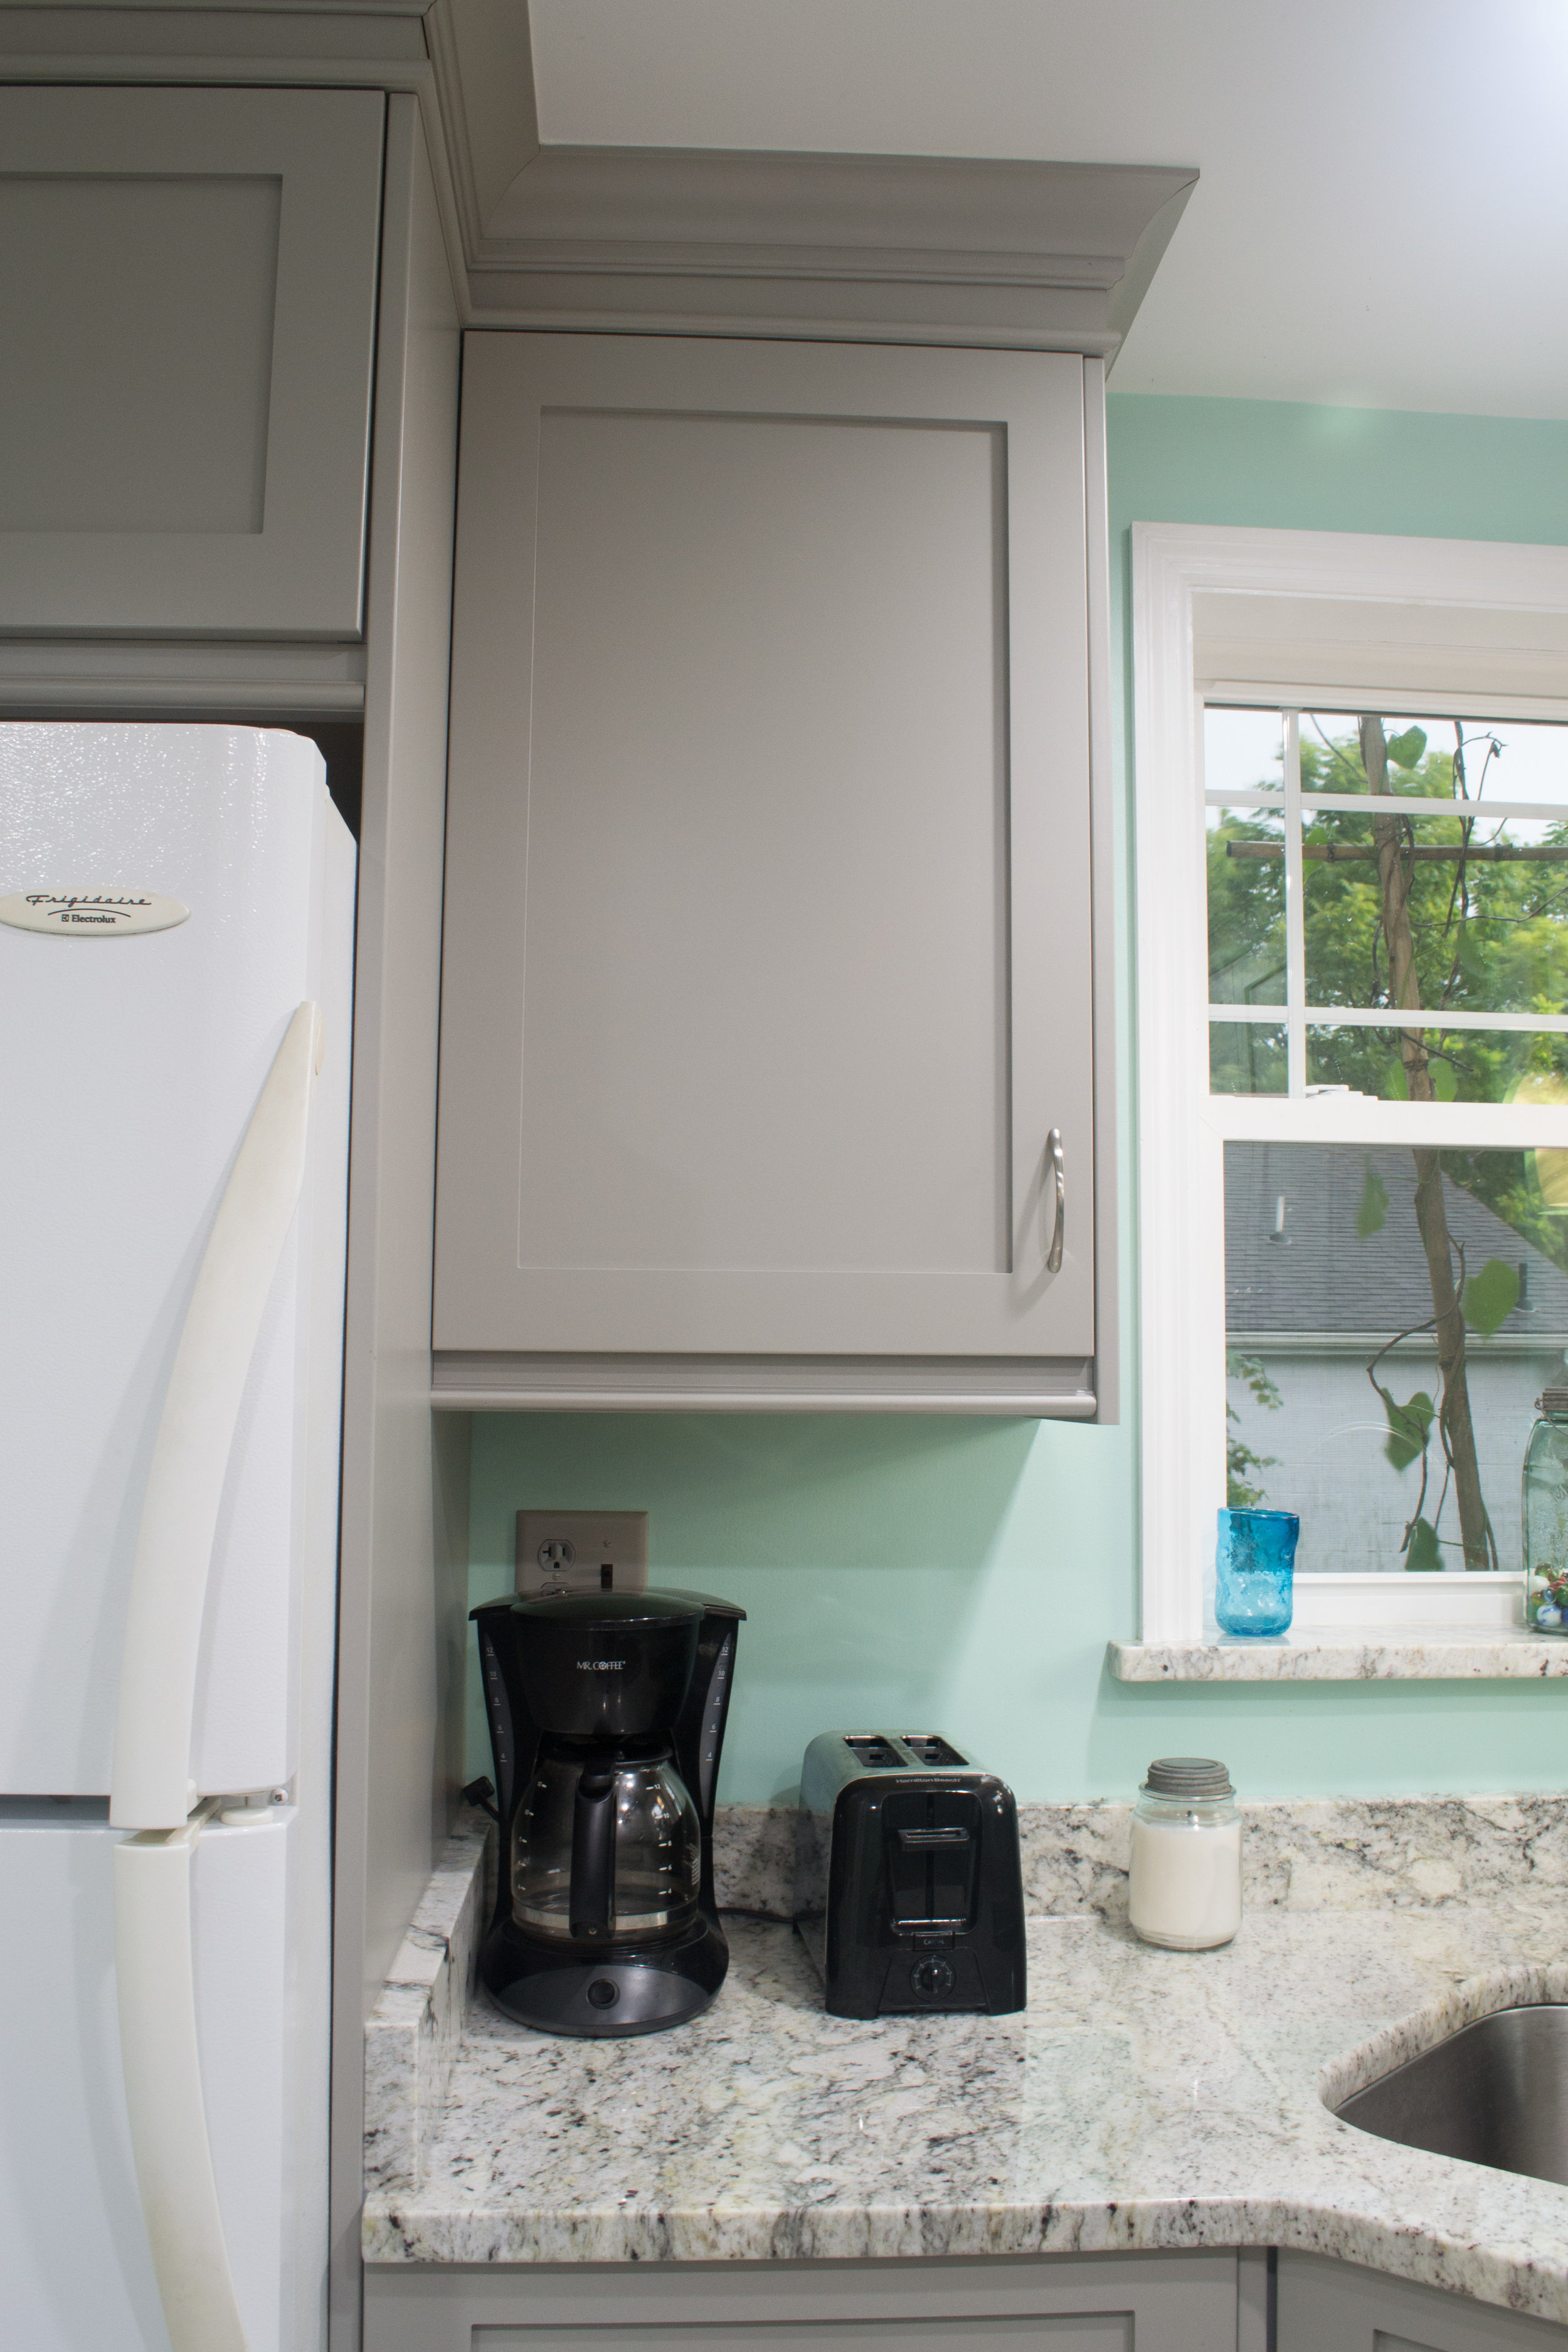 Mitchell grey shaker style kitchen painted cabinets-7.jpg